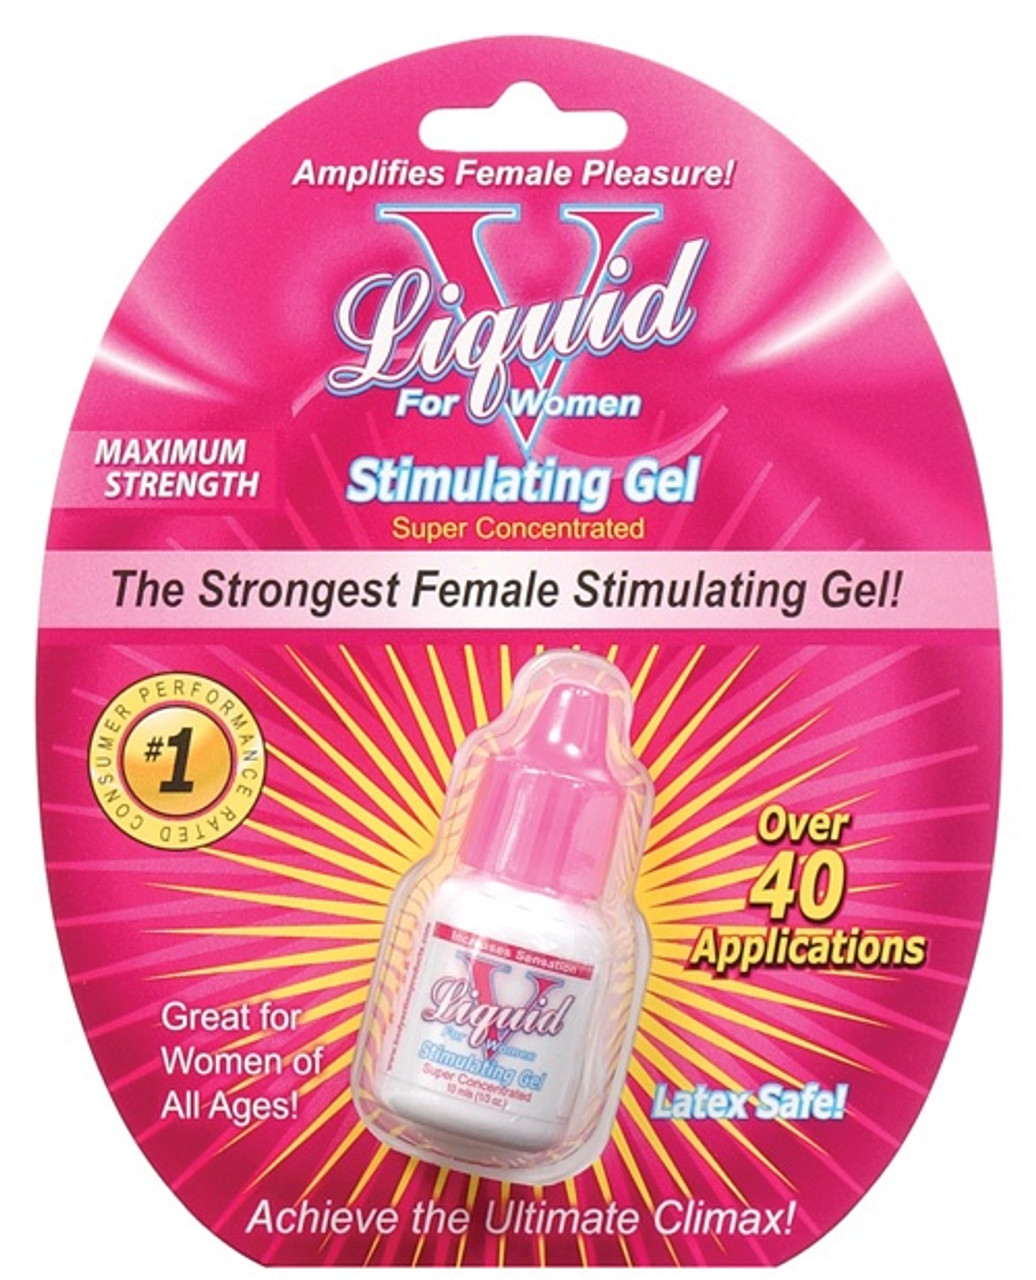 Body Action Liquid V for Women is a maximum strength topical gel that amplifies sexual pleasure for women immediately on contact.